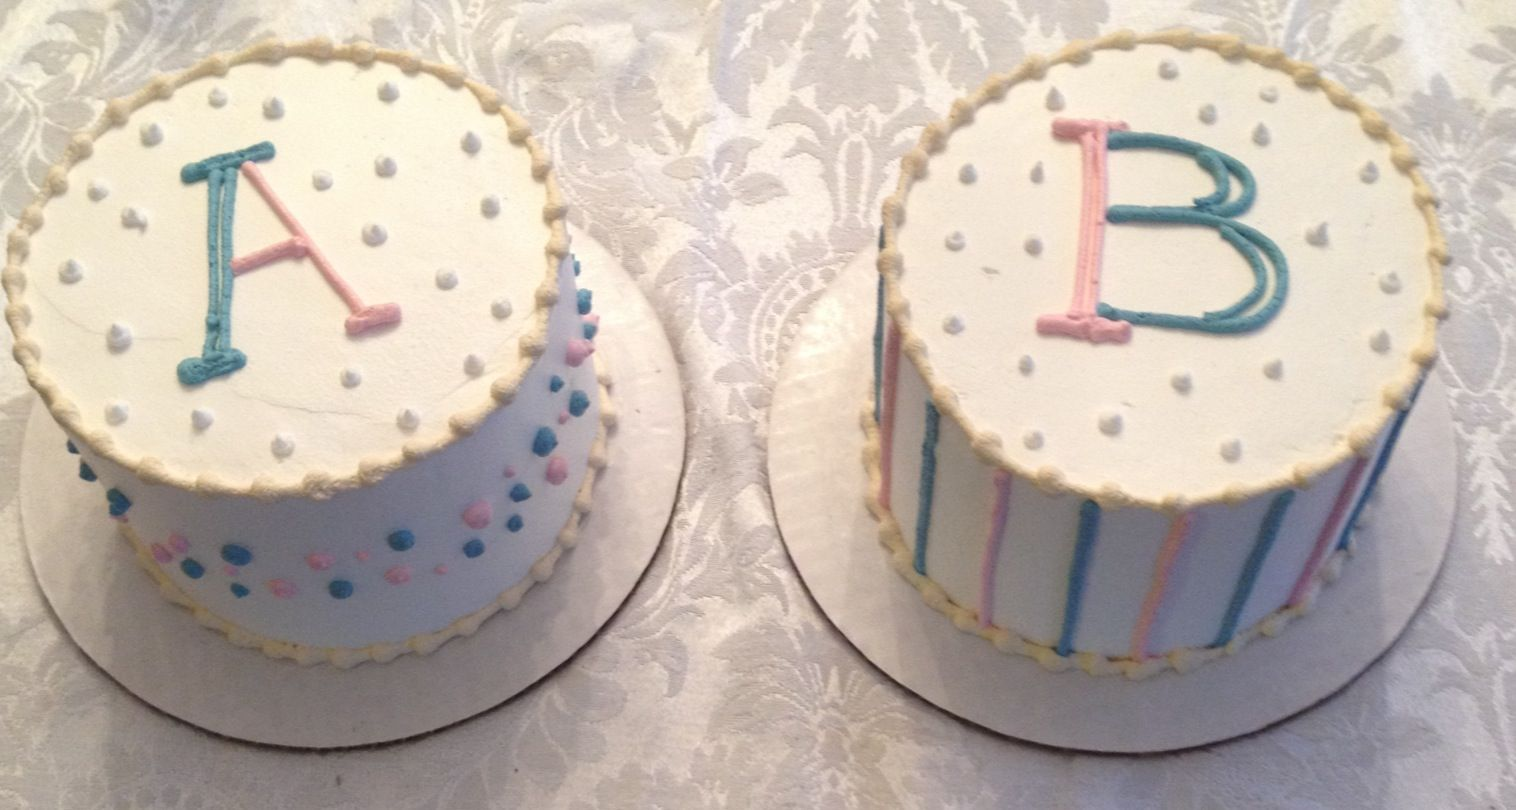 Gender reveal pic for the twins - Google Search